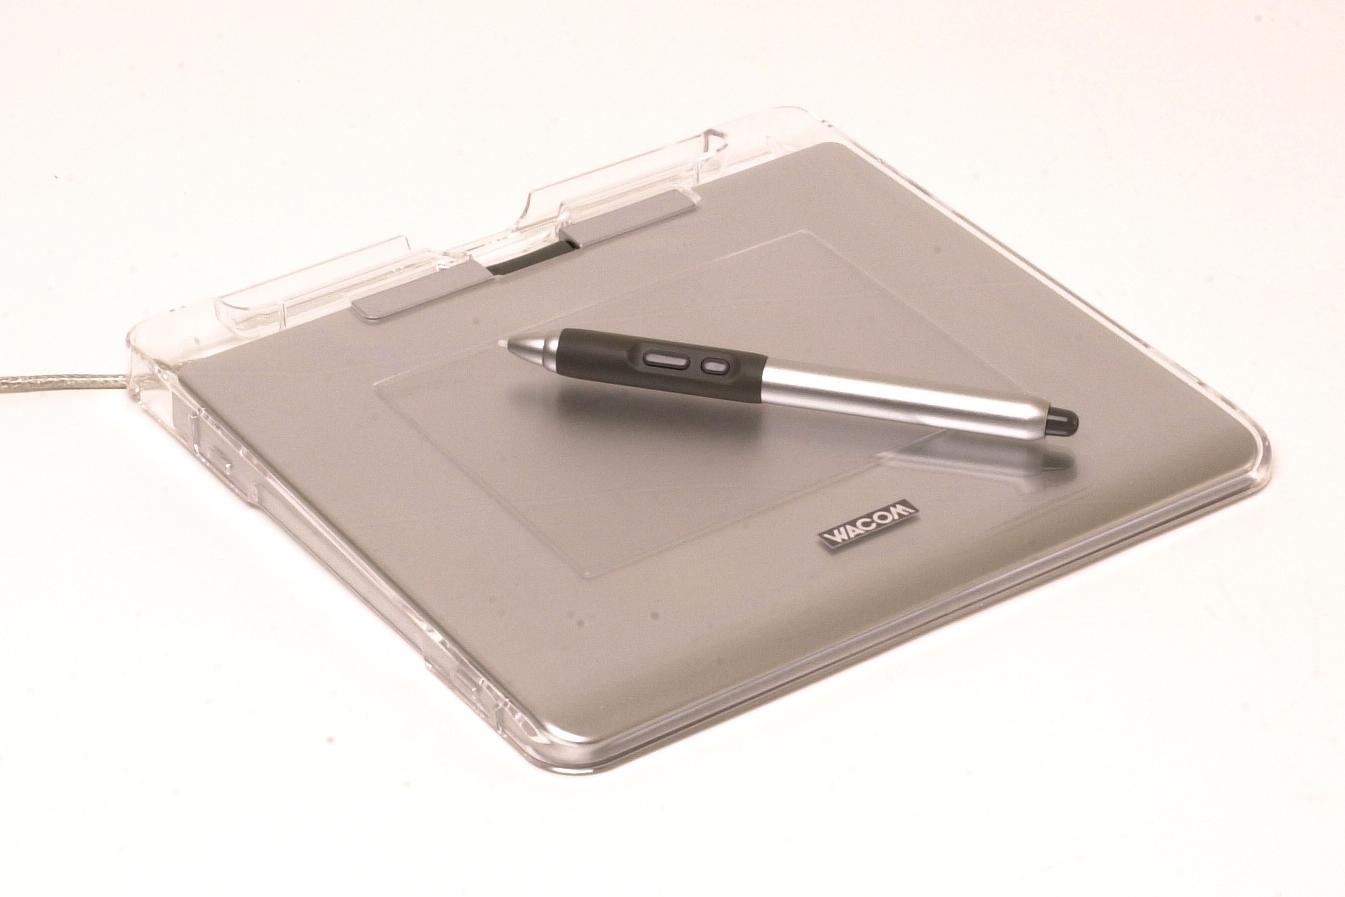 Wacom Graphire 4 CTE-440 Review: - PC Components - Keyboards, Mice